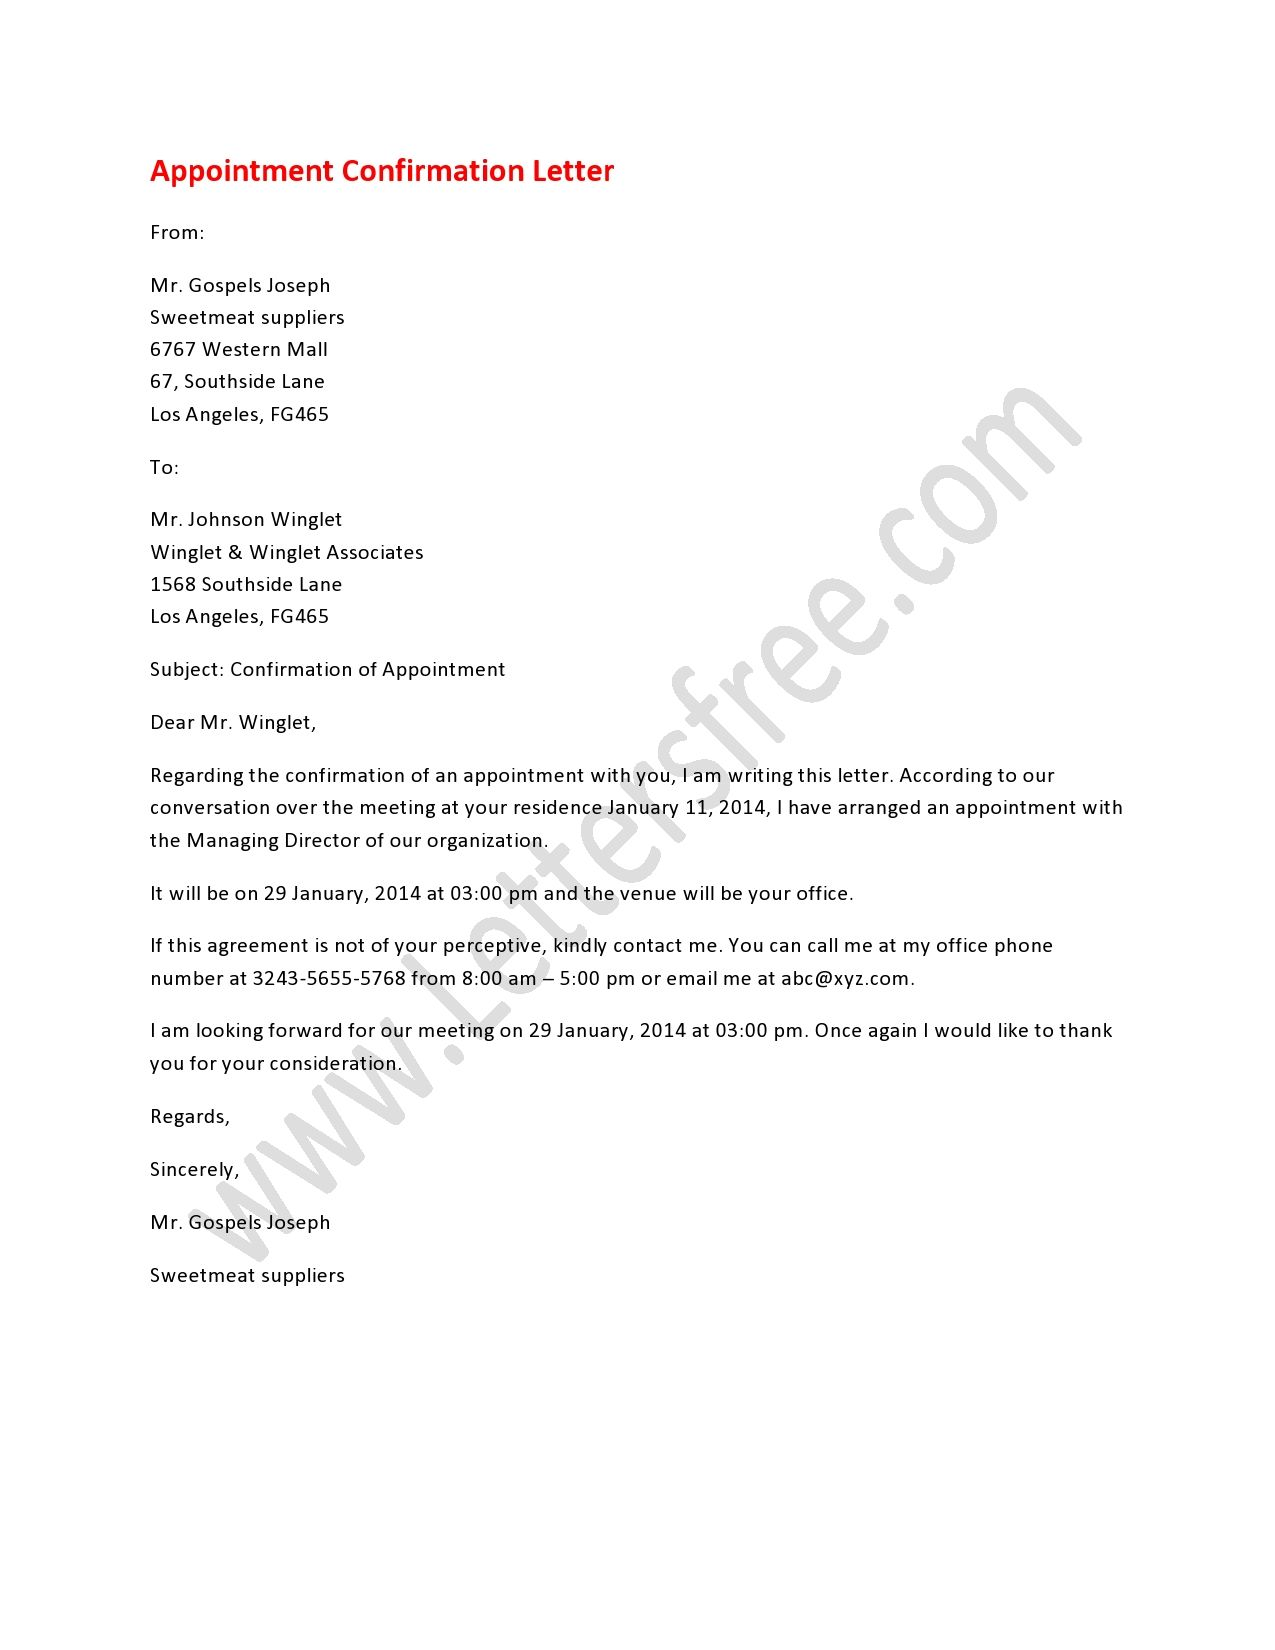 Appointment Confirmation Letter Is A Formal Letter Written For The